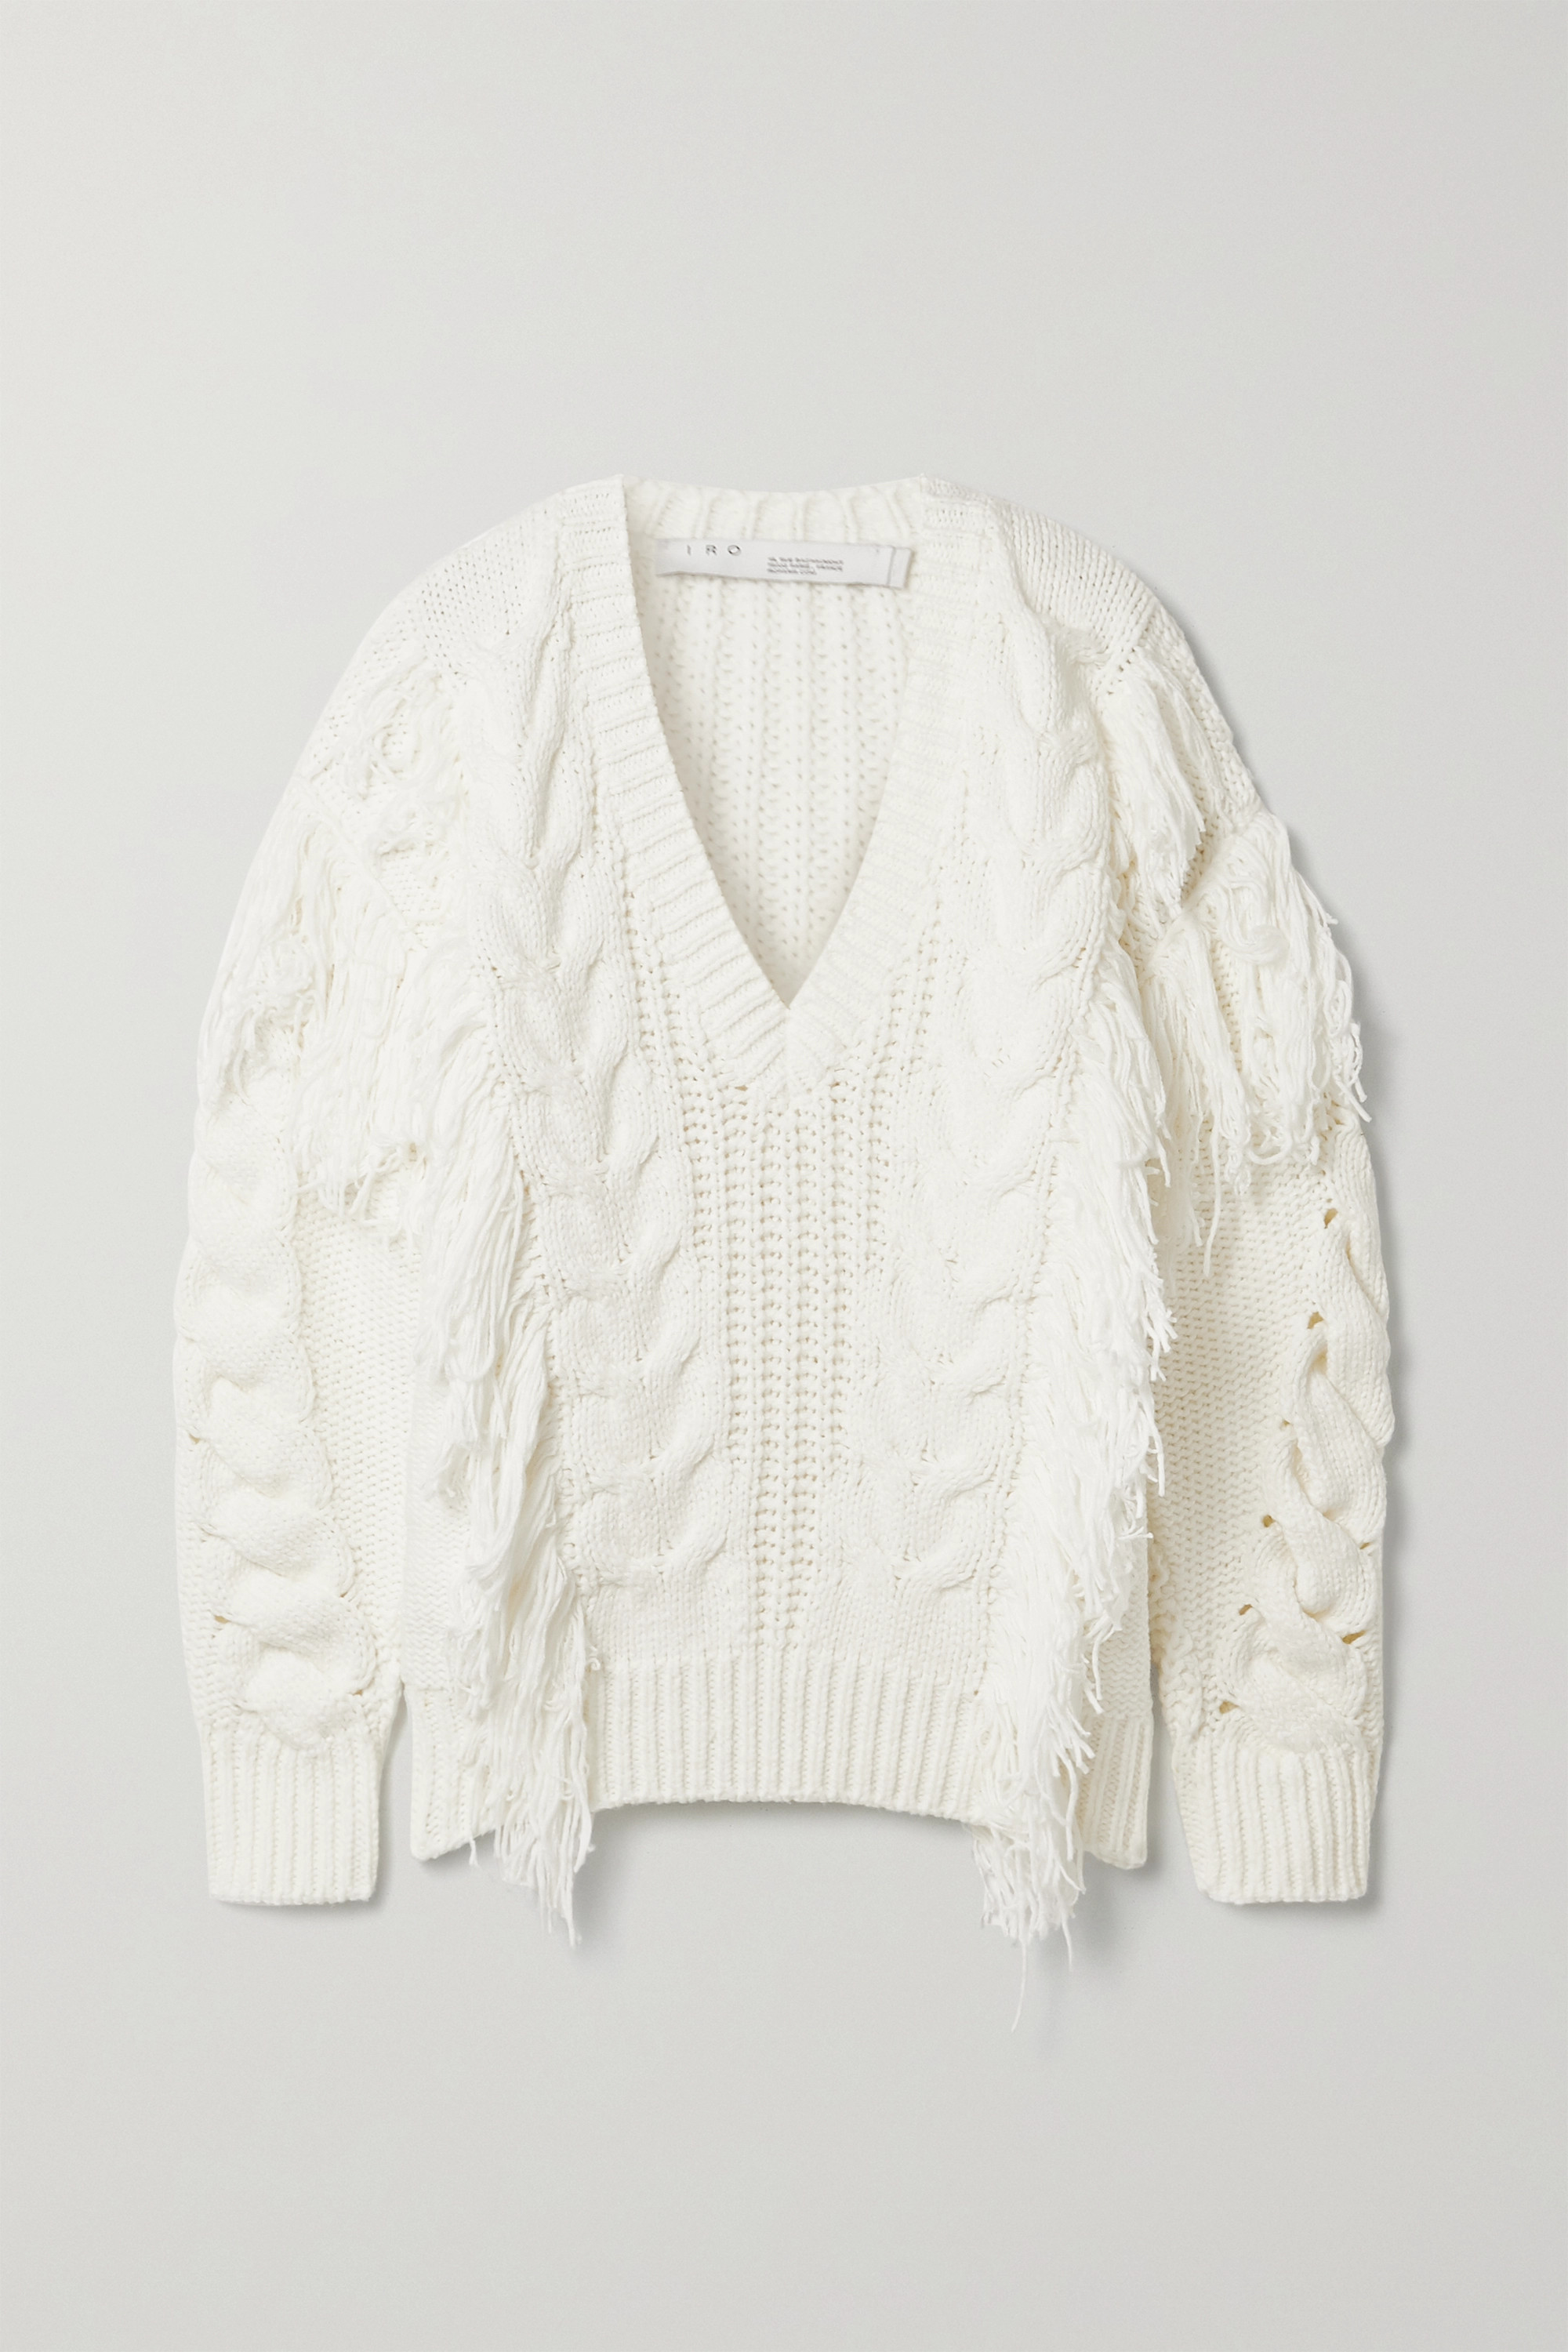 Wynd fringed cable knit cotton blend sweater